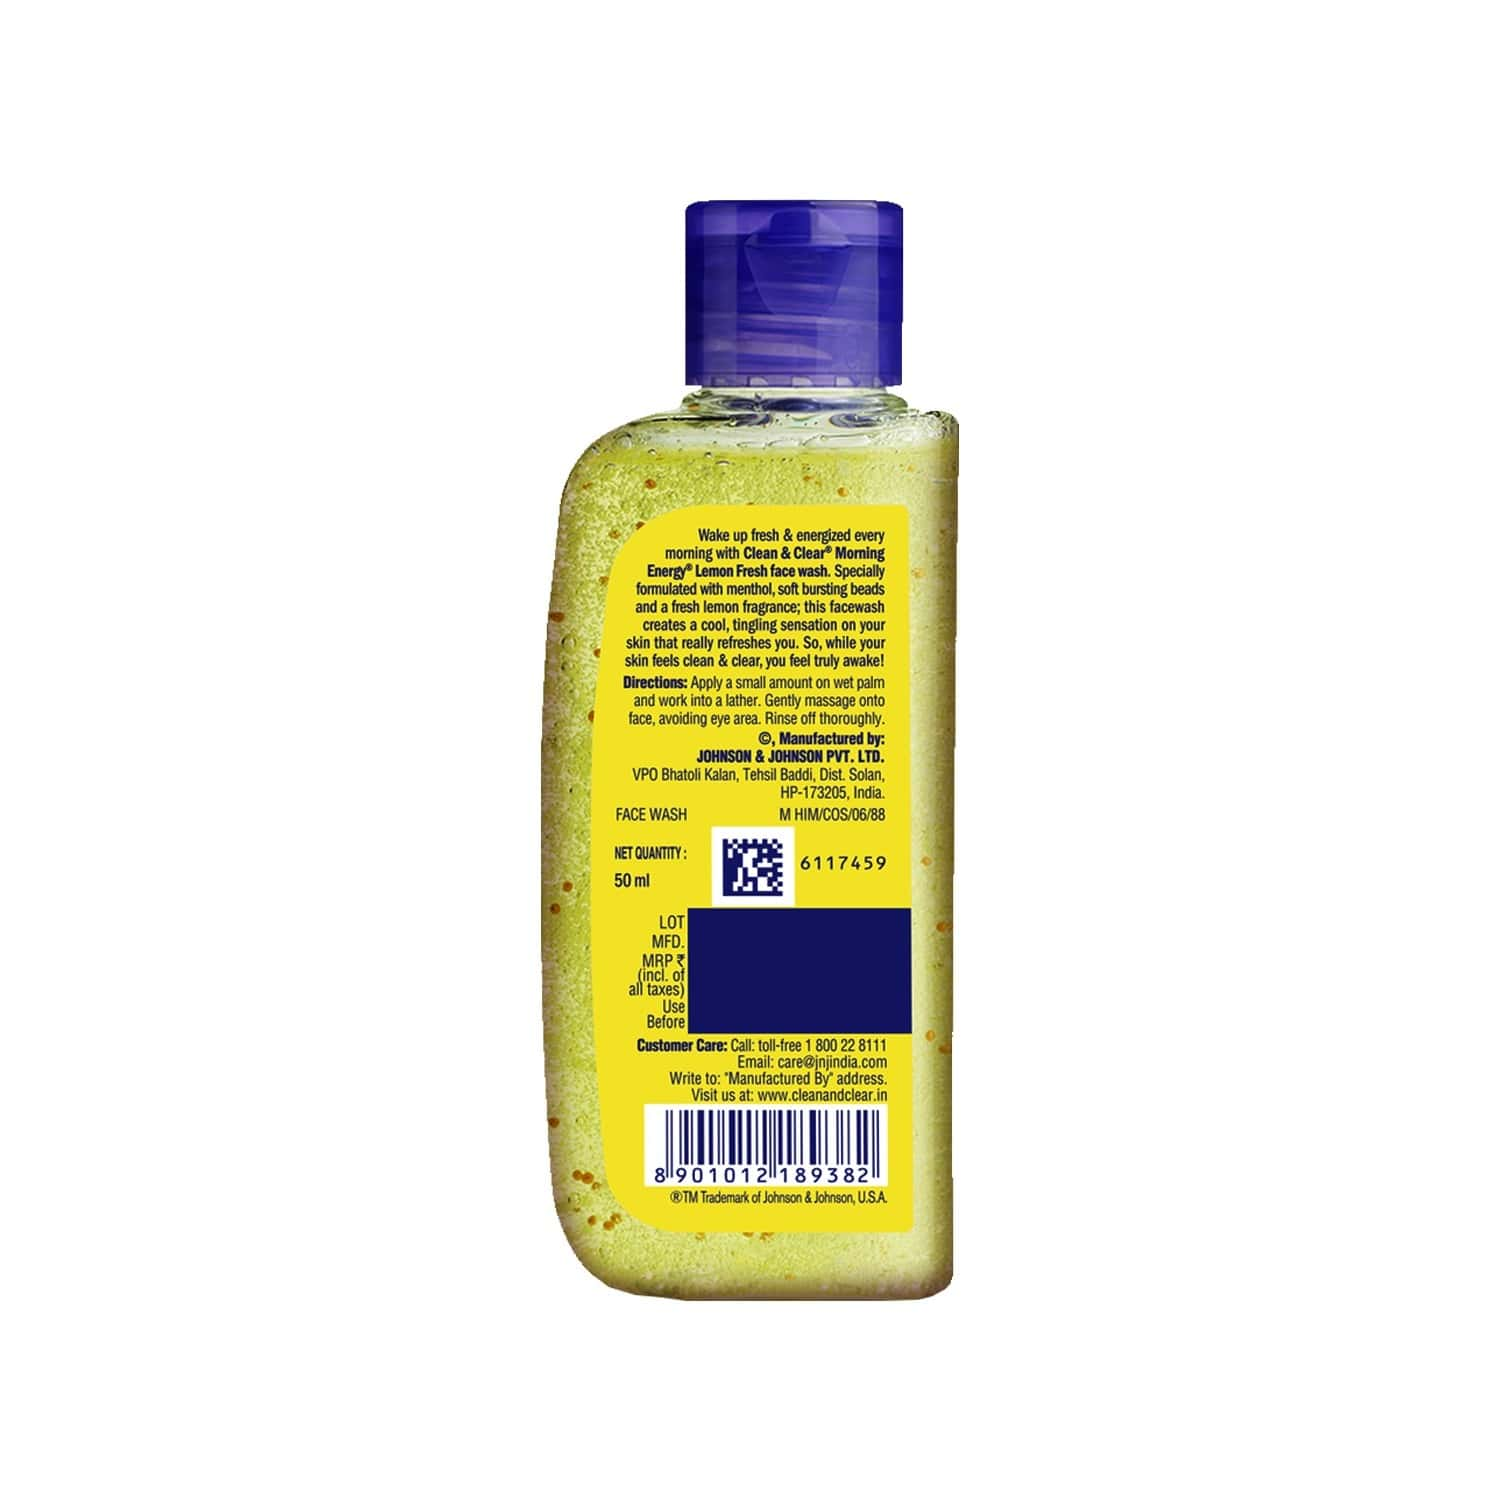 Clean And Clear Morning Energy Face Wash Energing Lemon 50ml